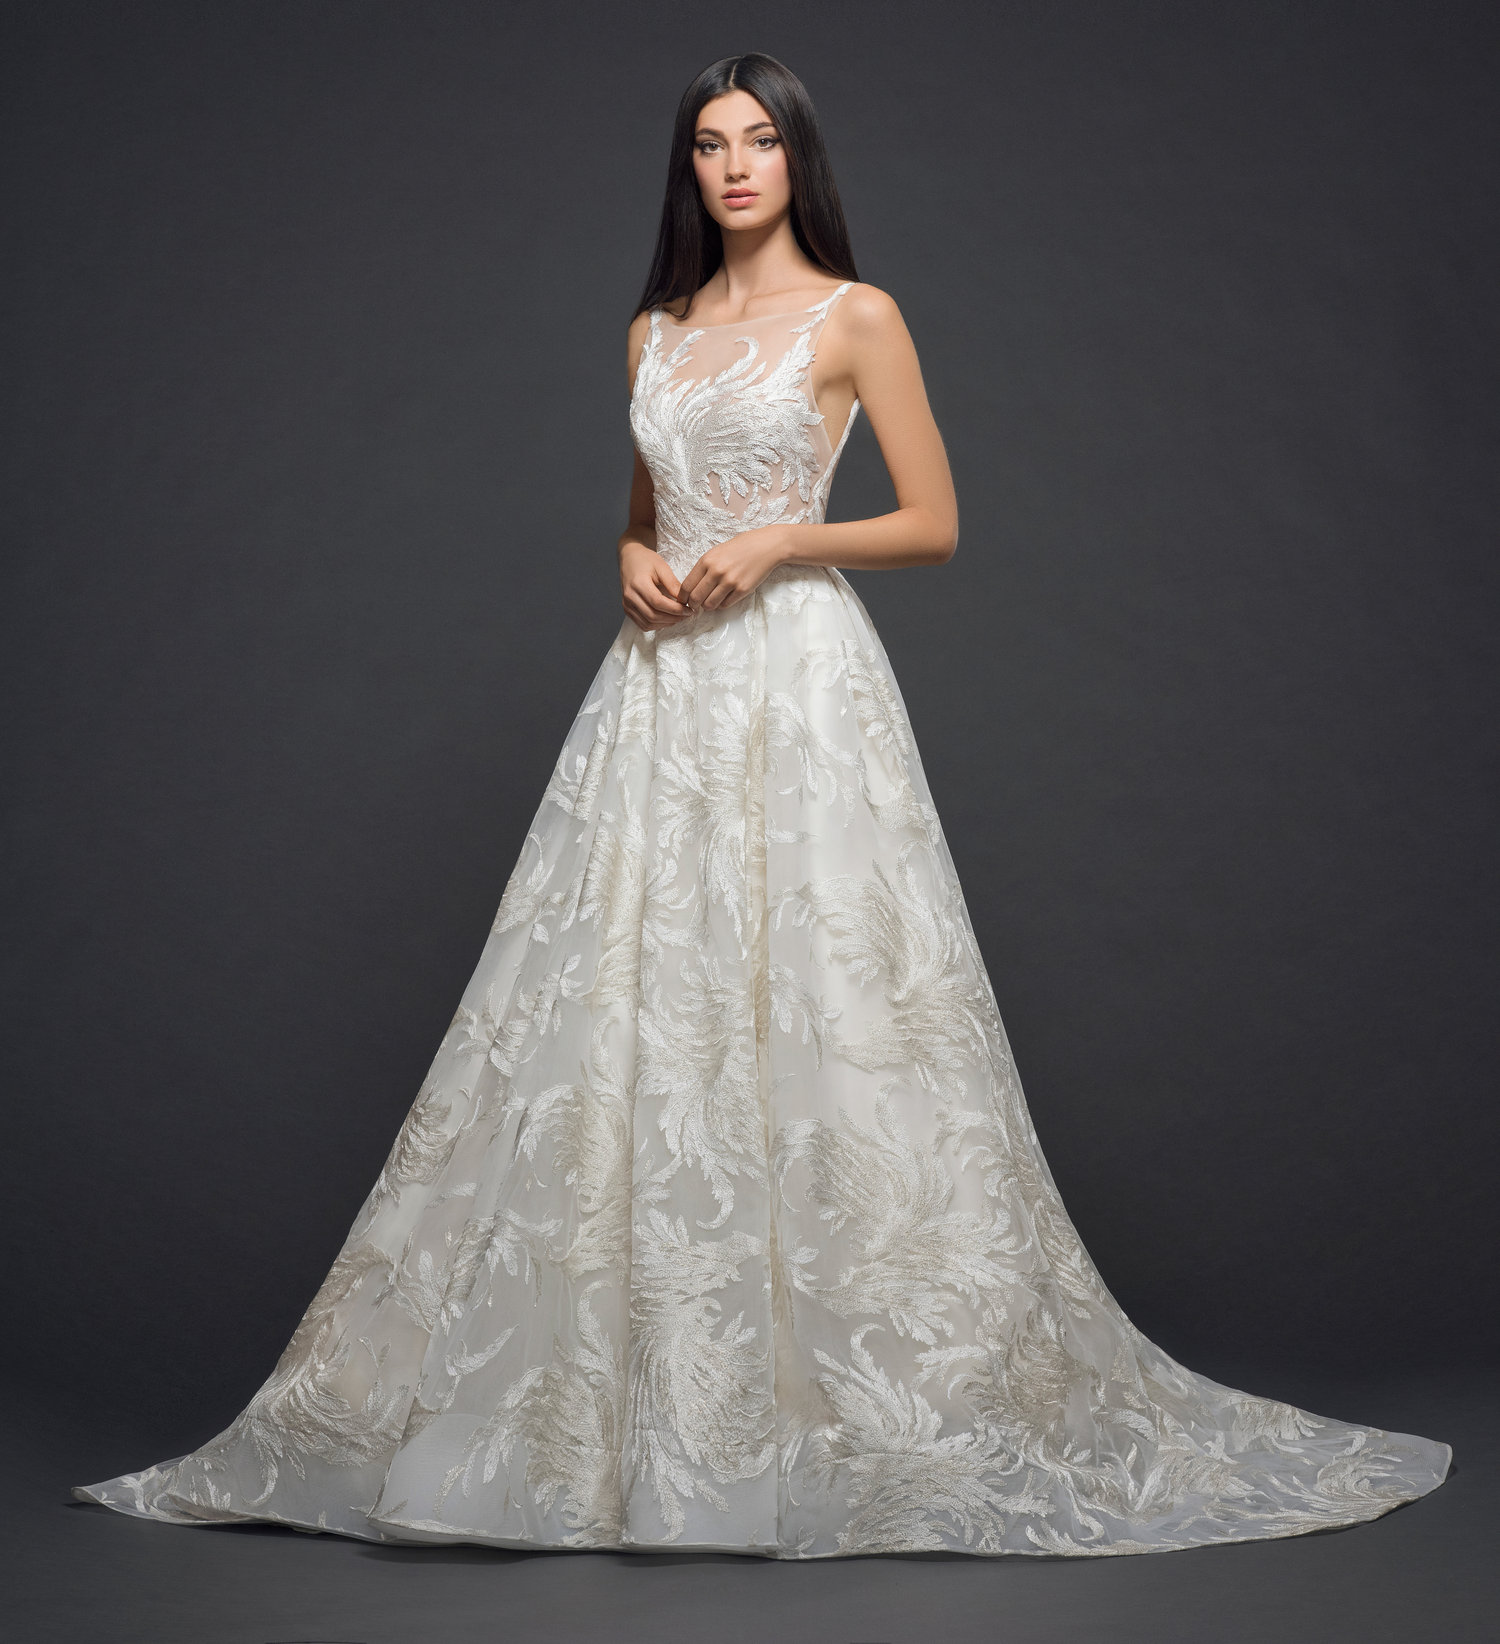 Choosing Between Dramatic and Simple Bridal Gowns for Your Wedding ...